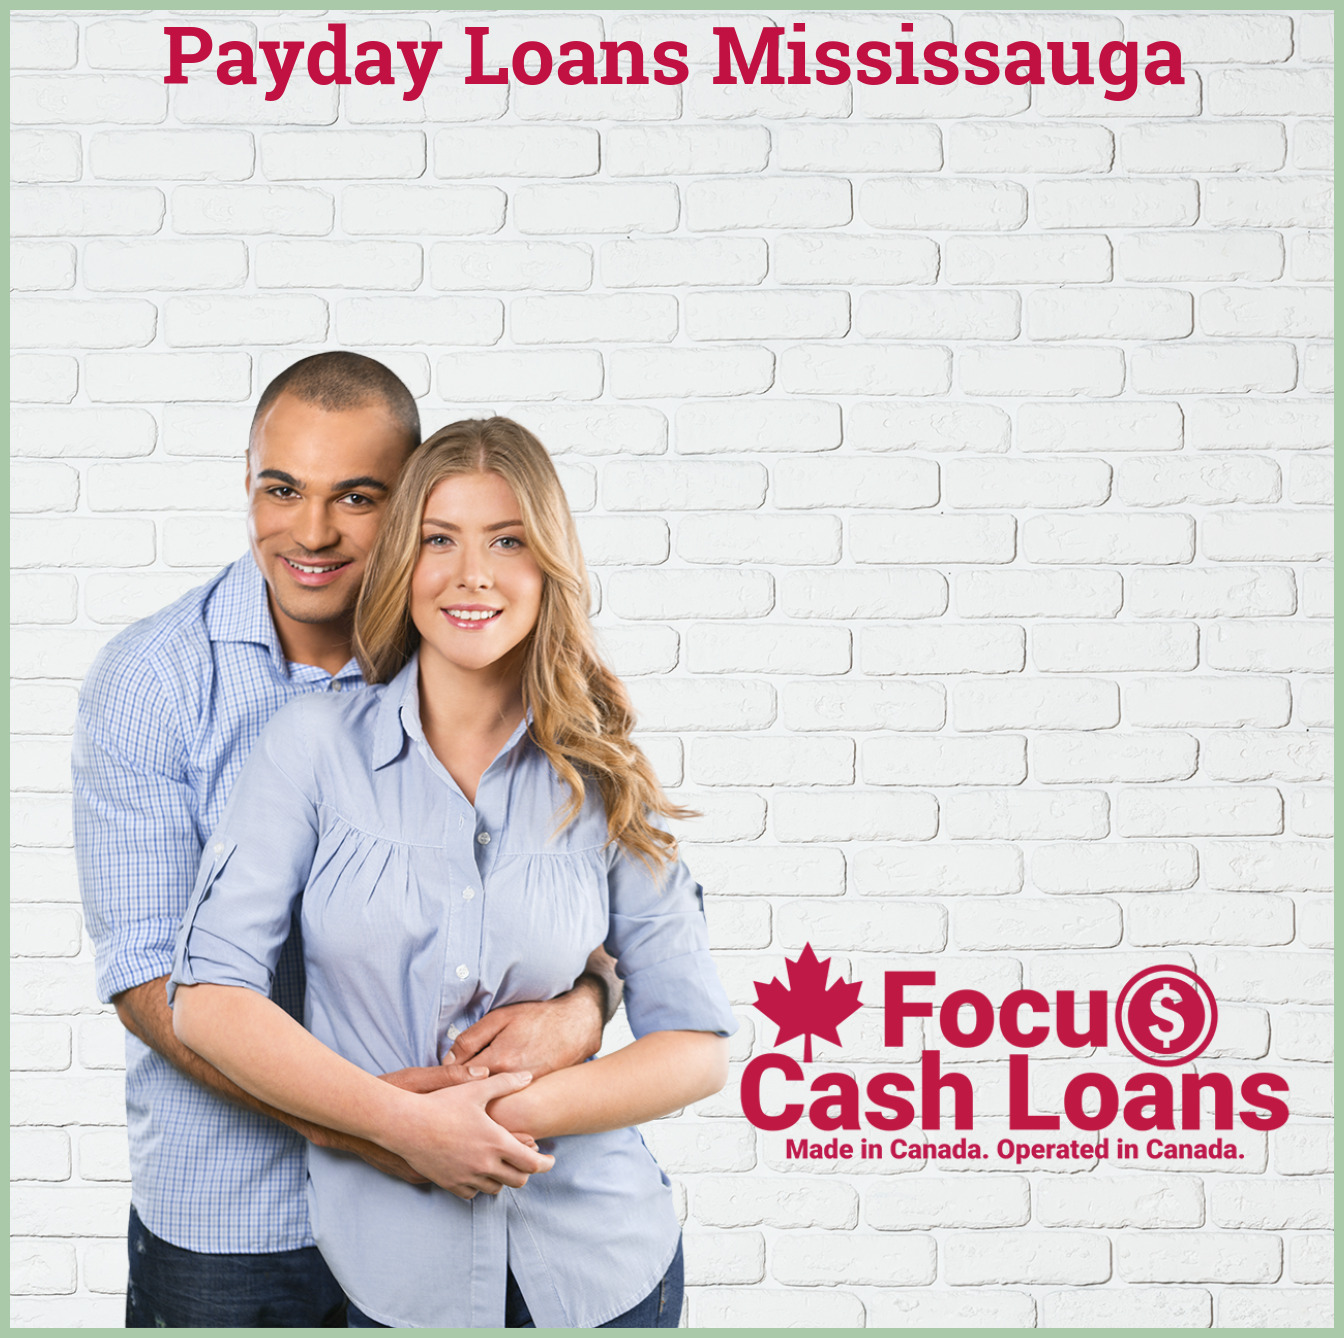 Payday loans for three months image 5